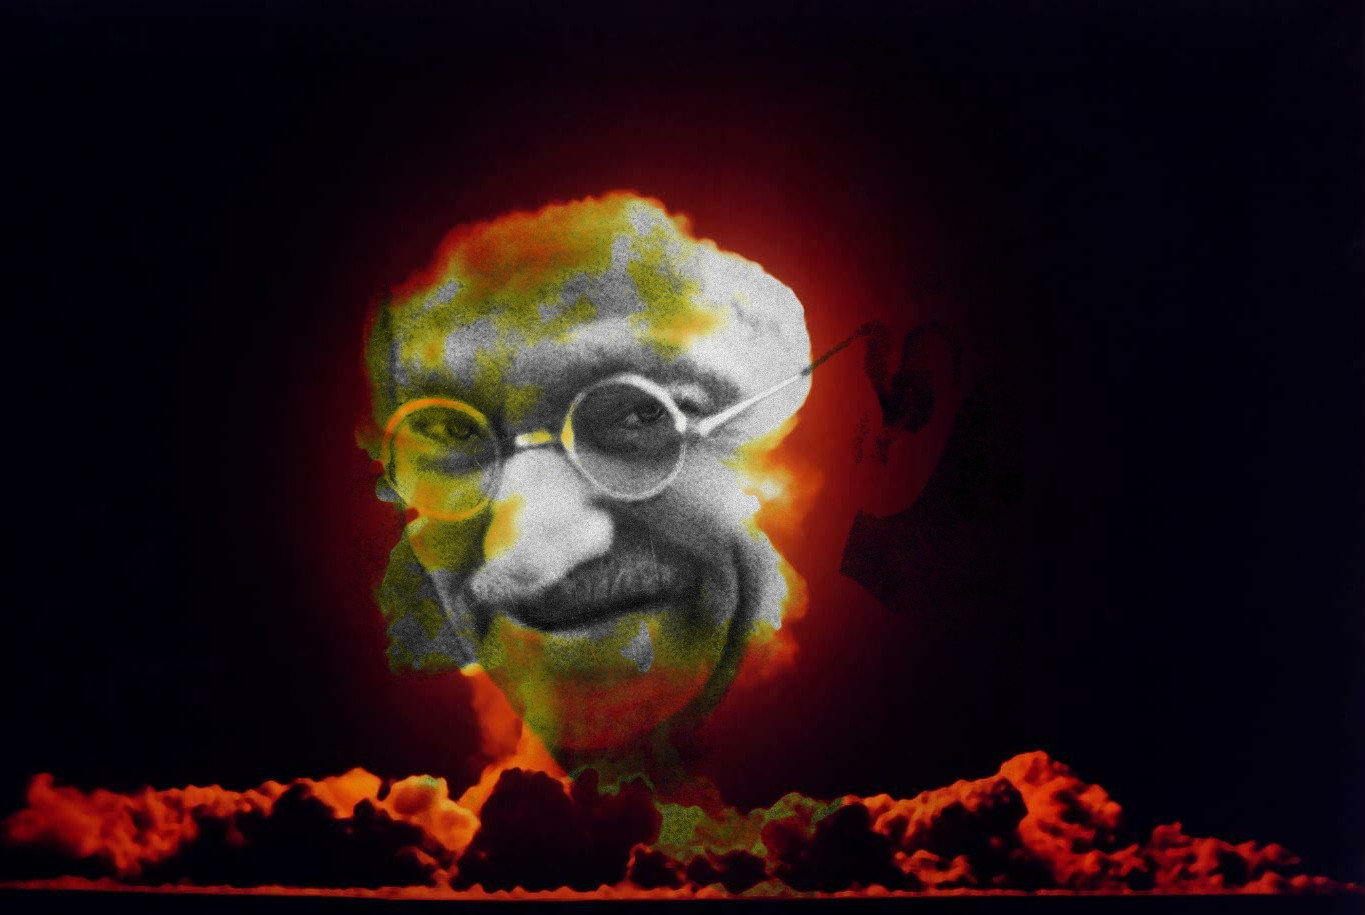 Nuclear Gandhi | Know Your Meme